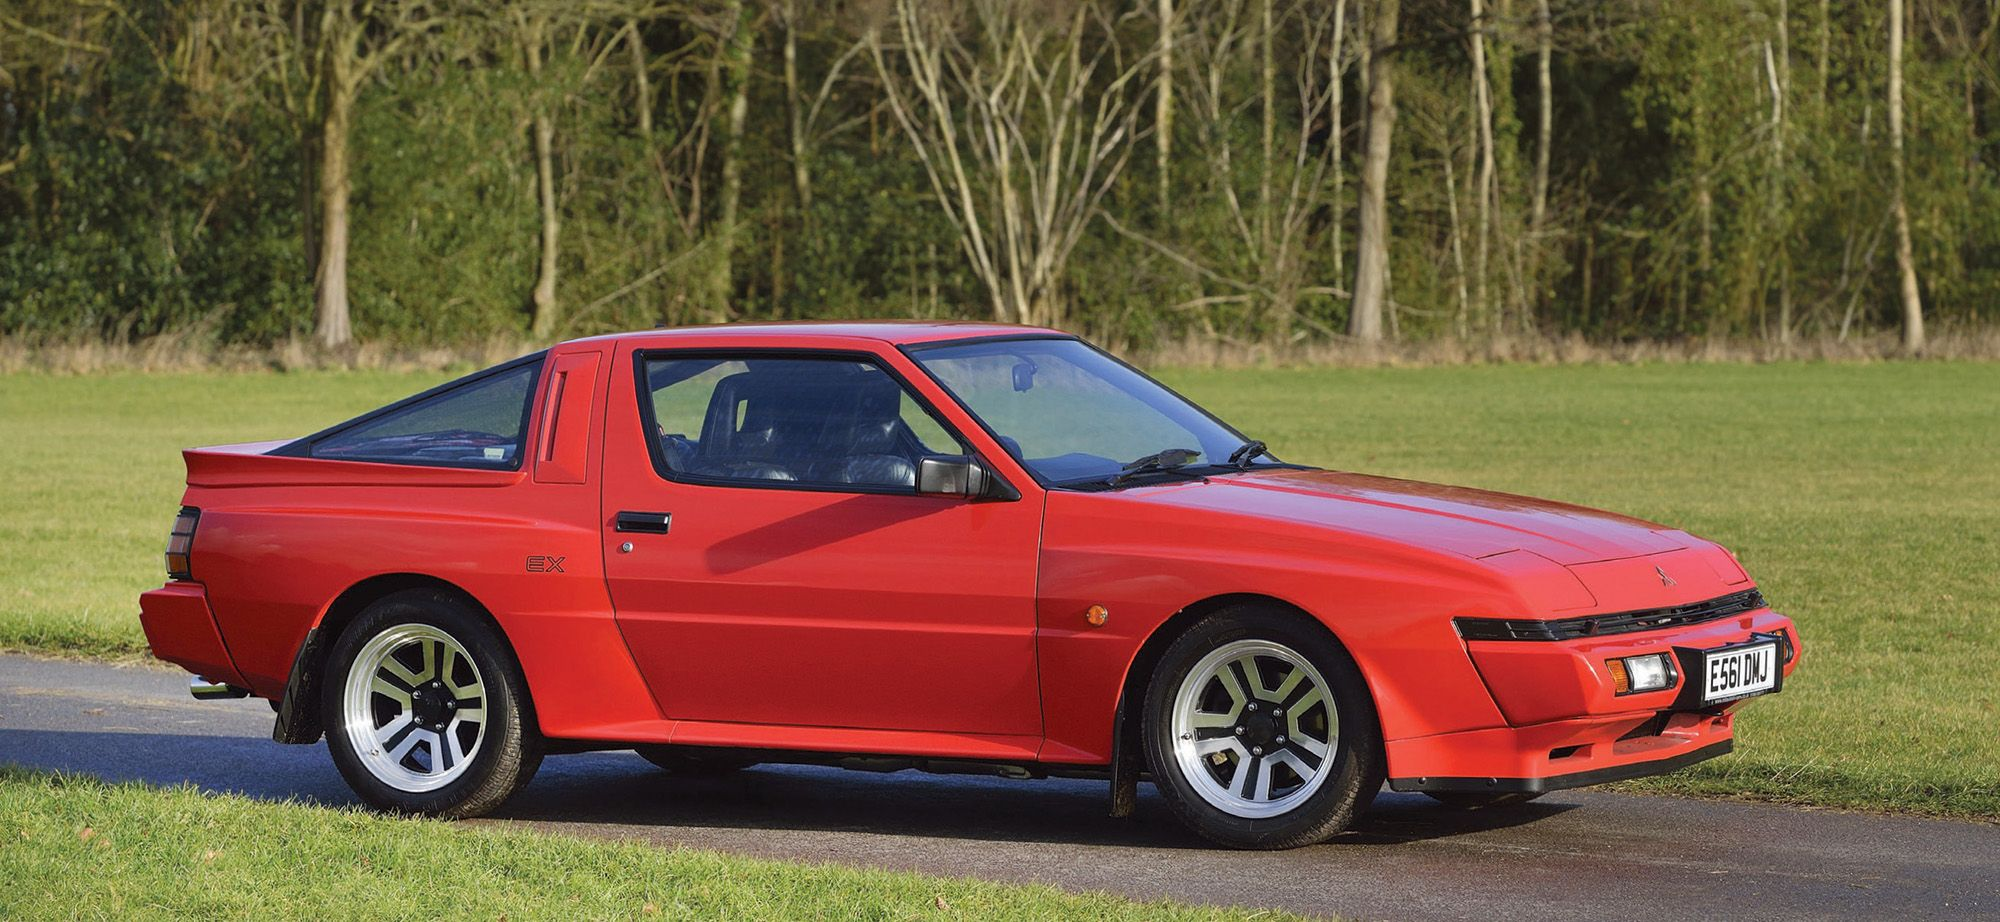 Vintage Views Mitsubishi Starion Esi R And Chrysler Conquest Tsi